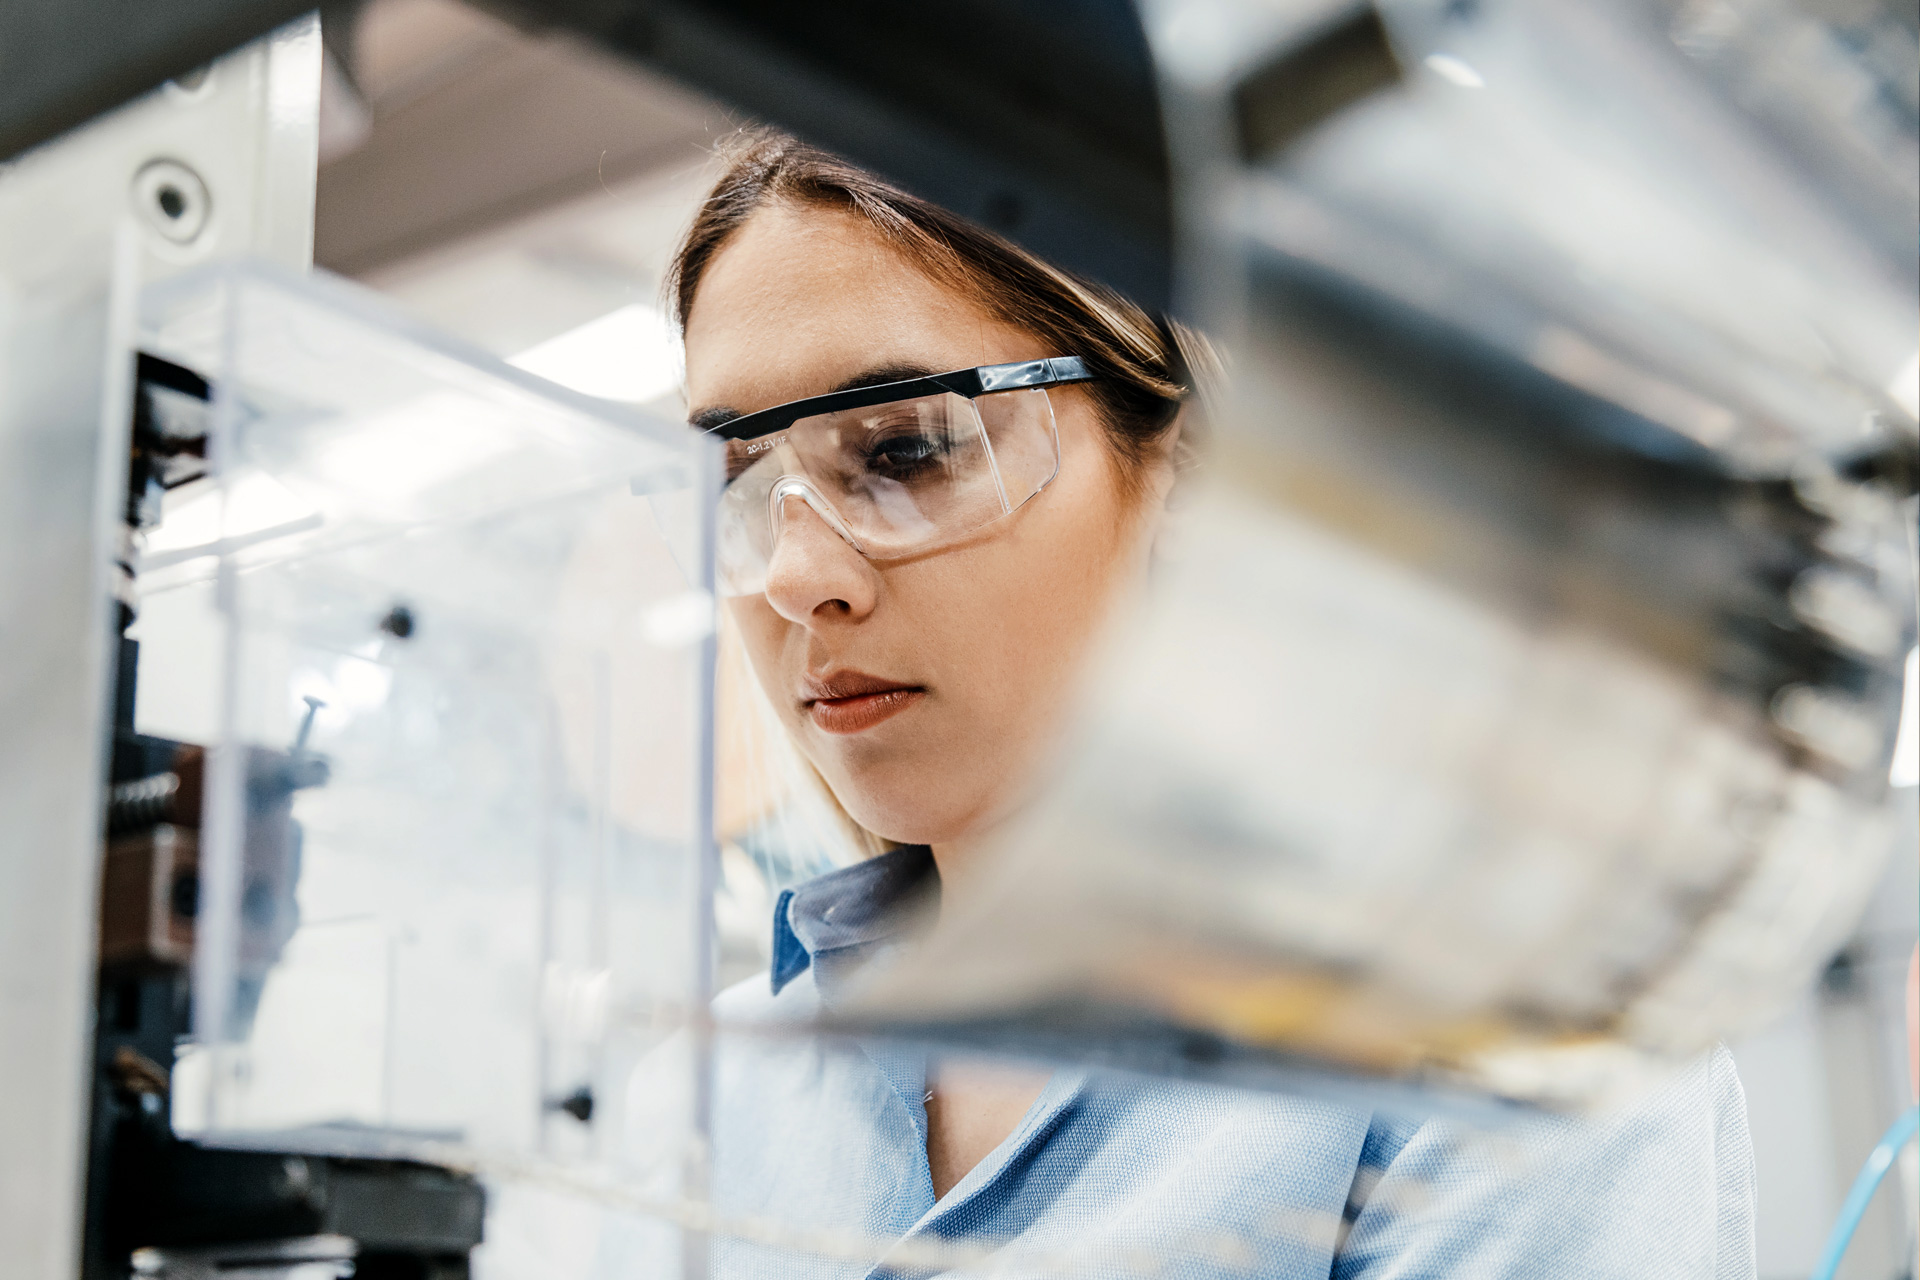 Woman wearing safety glasses working in a laboratory